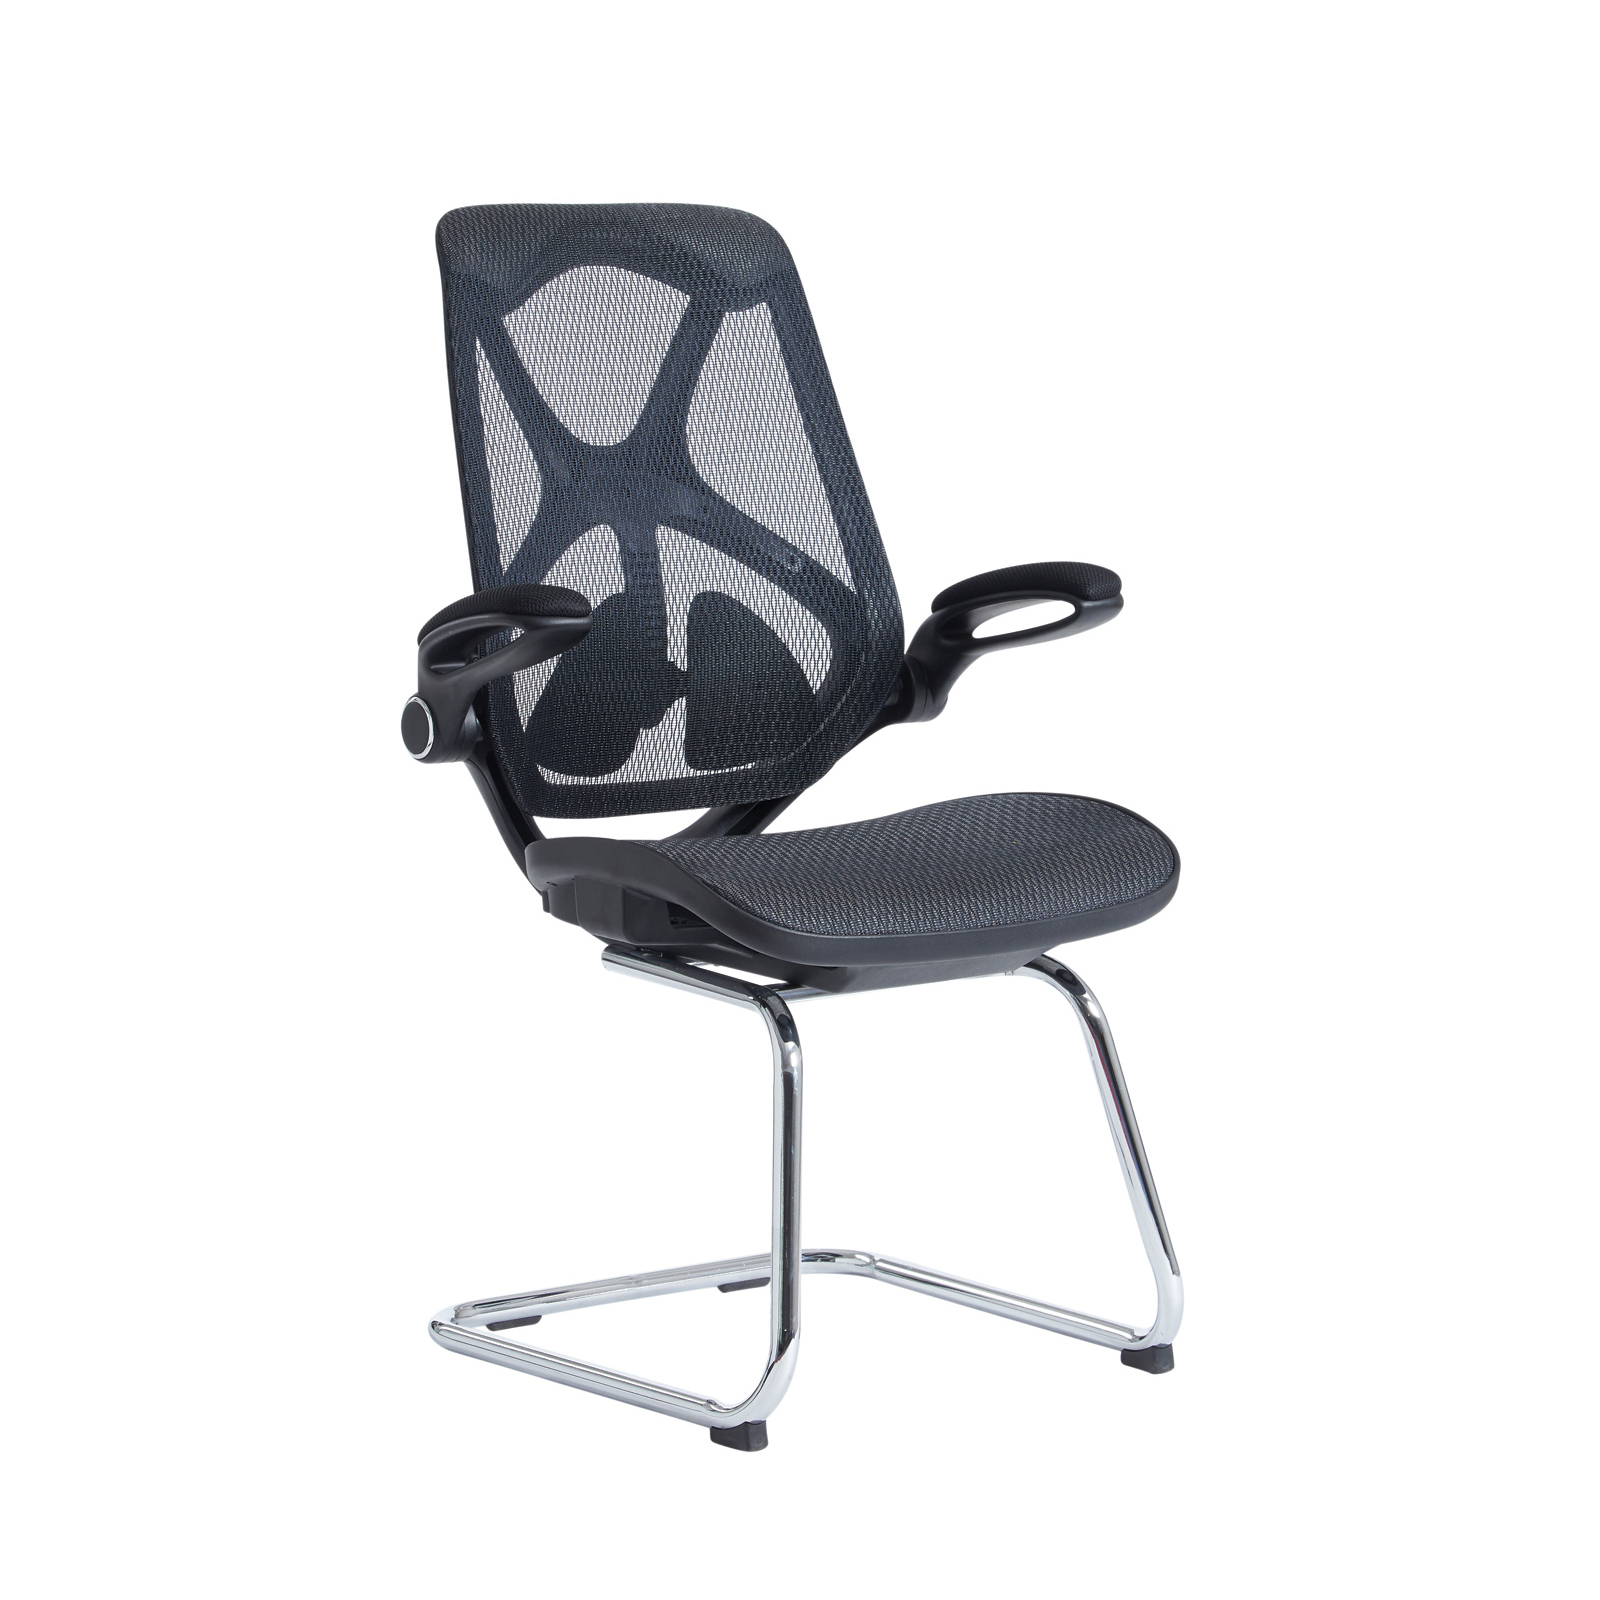 Boardroom / Meeting Napier high mesh back visitors chair with mesh seat - black